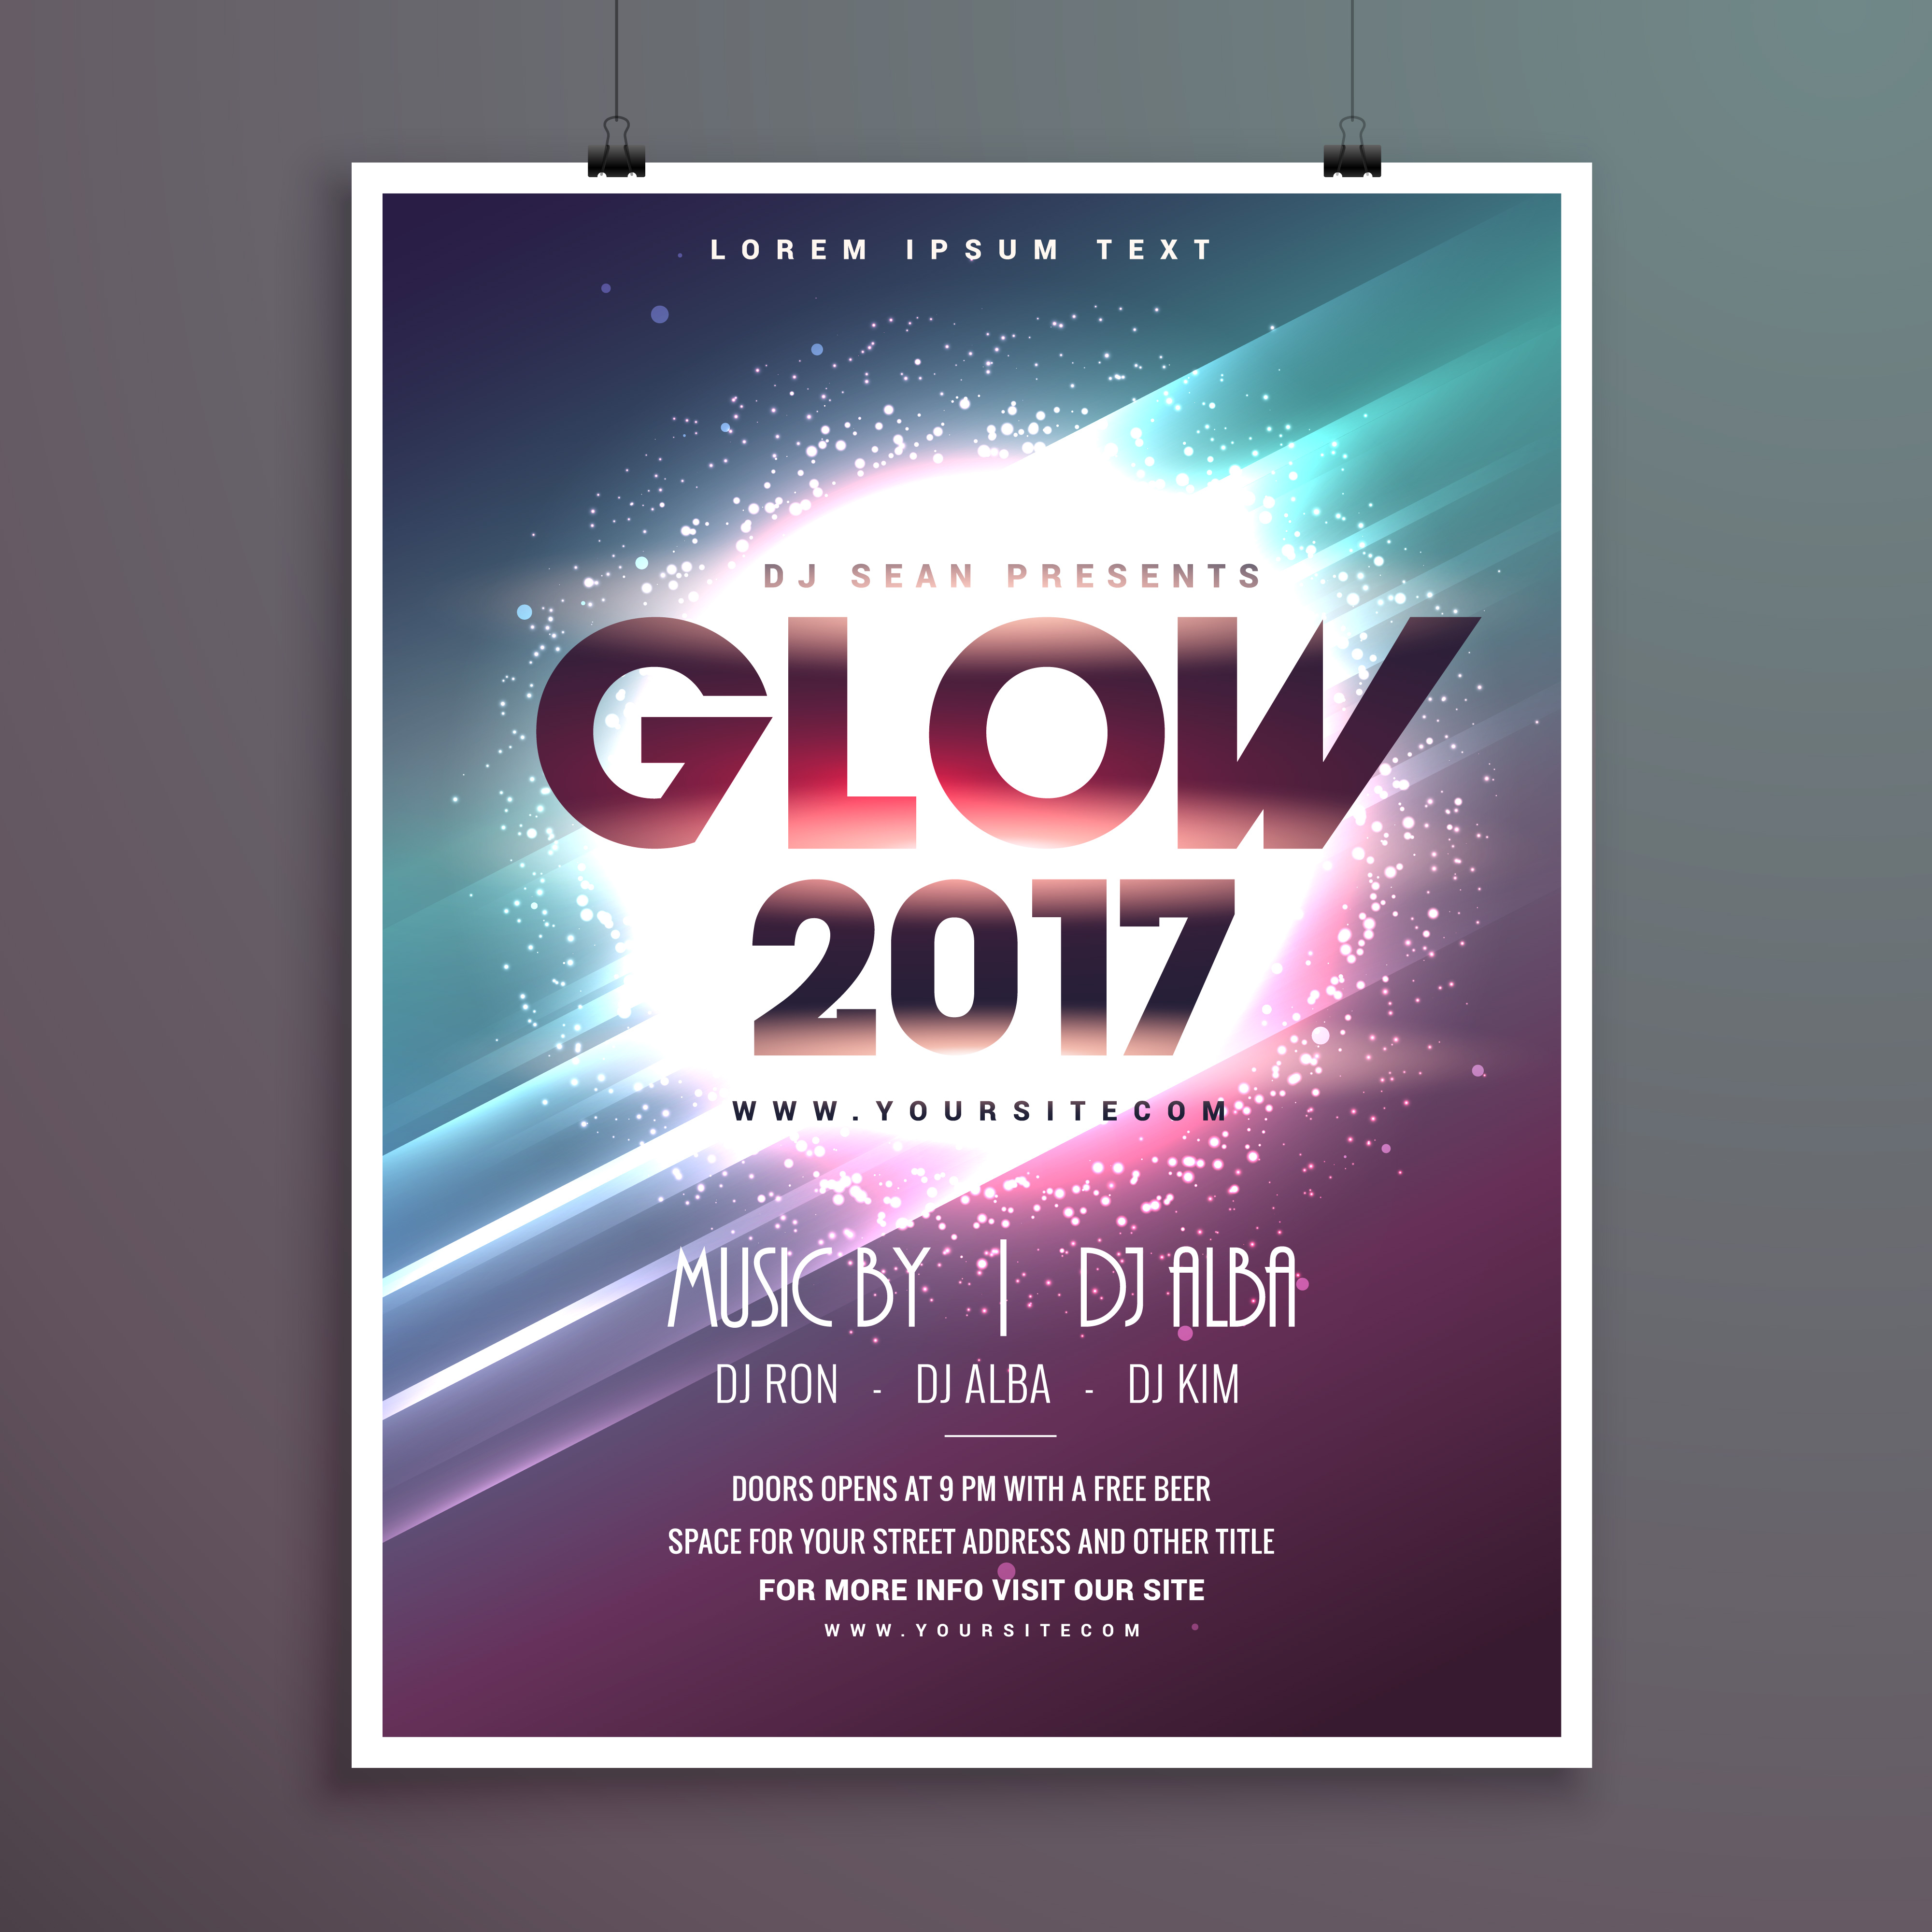 2017 new year party flyer brochure template with glowing